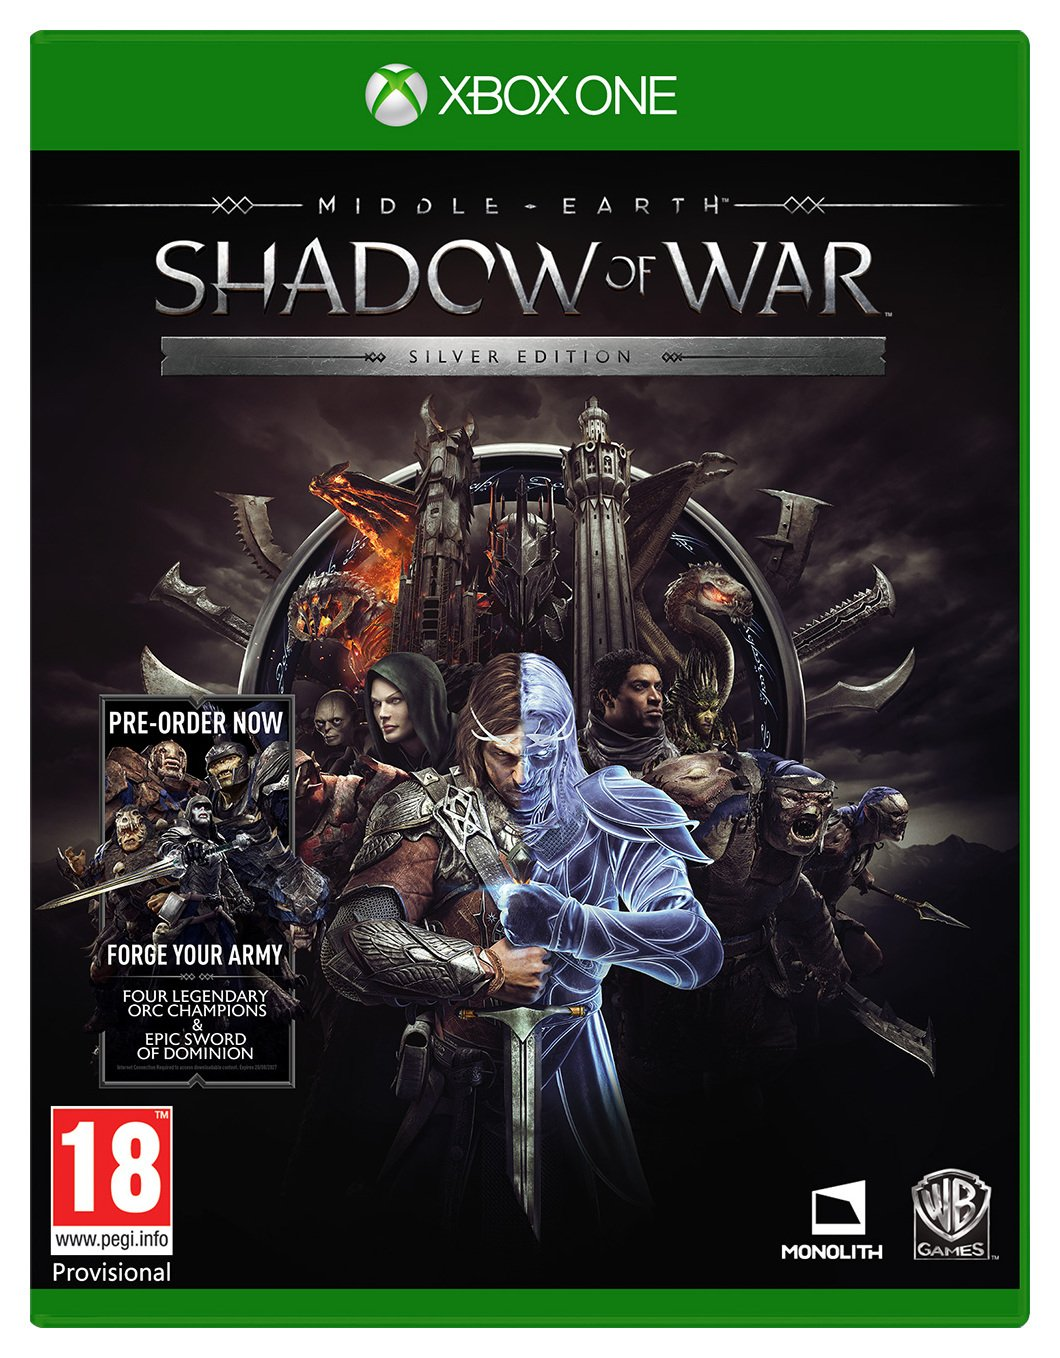 Middle-Earth: Shadow of War Silver Edn Xbox One Pre-Order